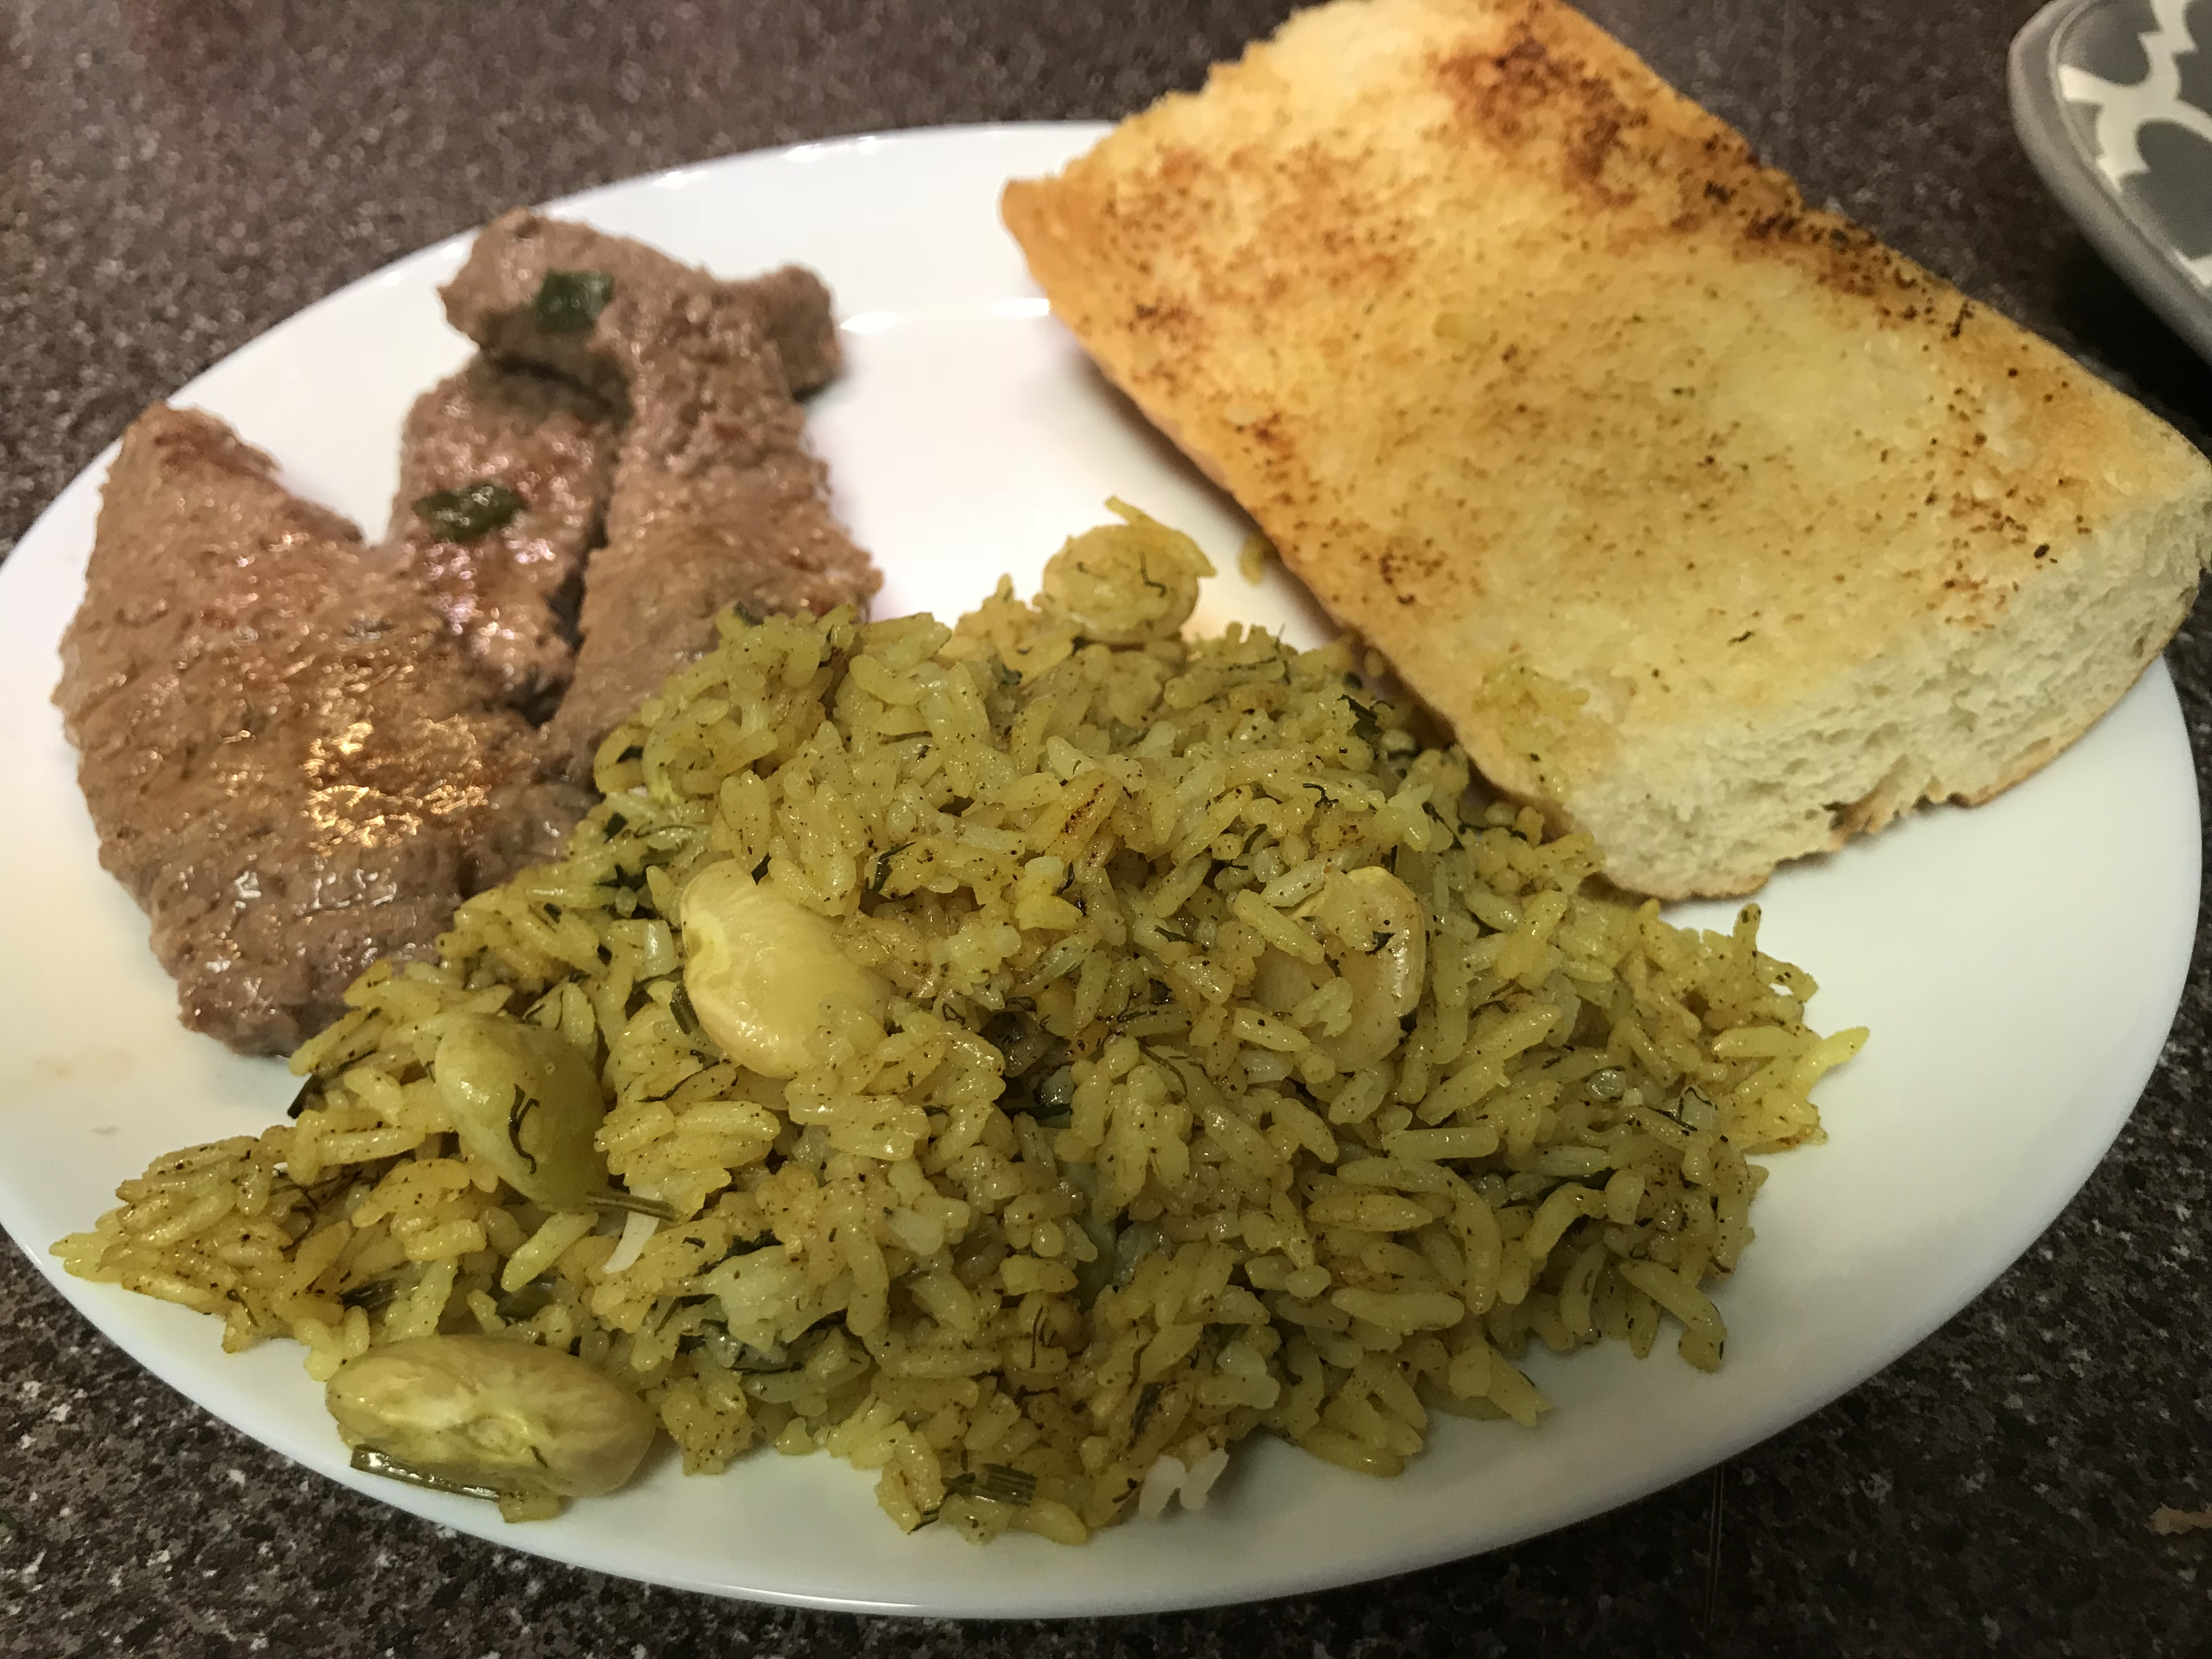 Persian Sabzi Polo (Herb Rice with Fava Beans) A Girl U Should Know